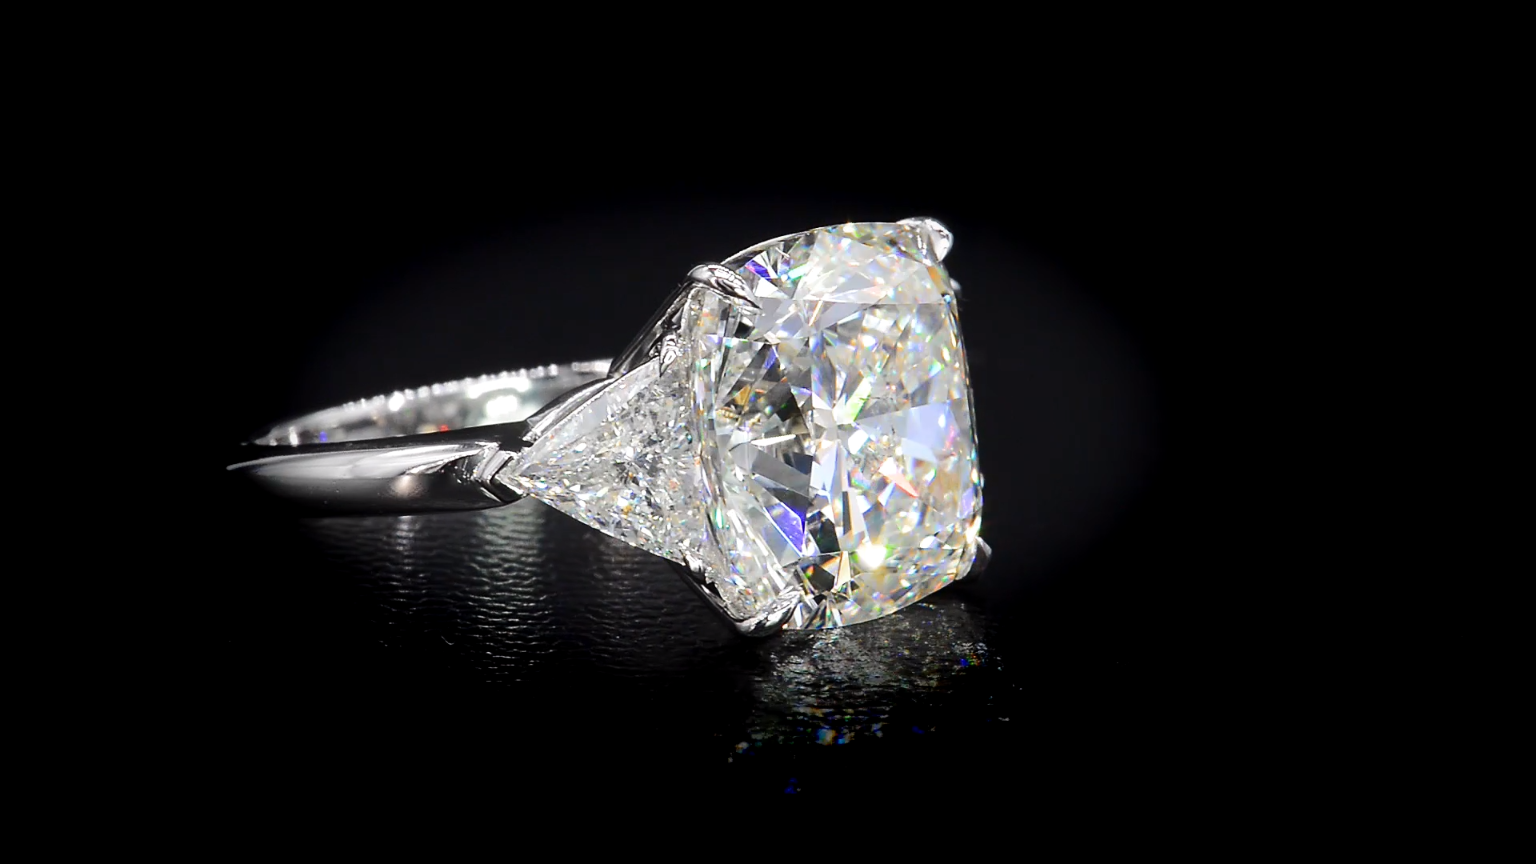 10 Carat Diamond Ring Designed By Bez Ambar The Best Prices For The Best Quality Video Video Diamond Rings Design 10 Carat Diamond Ring Princess Diamond Ring